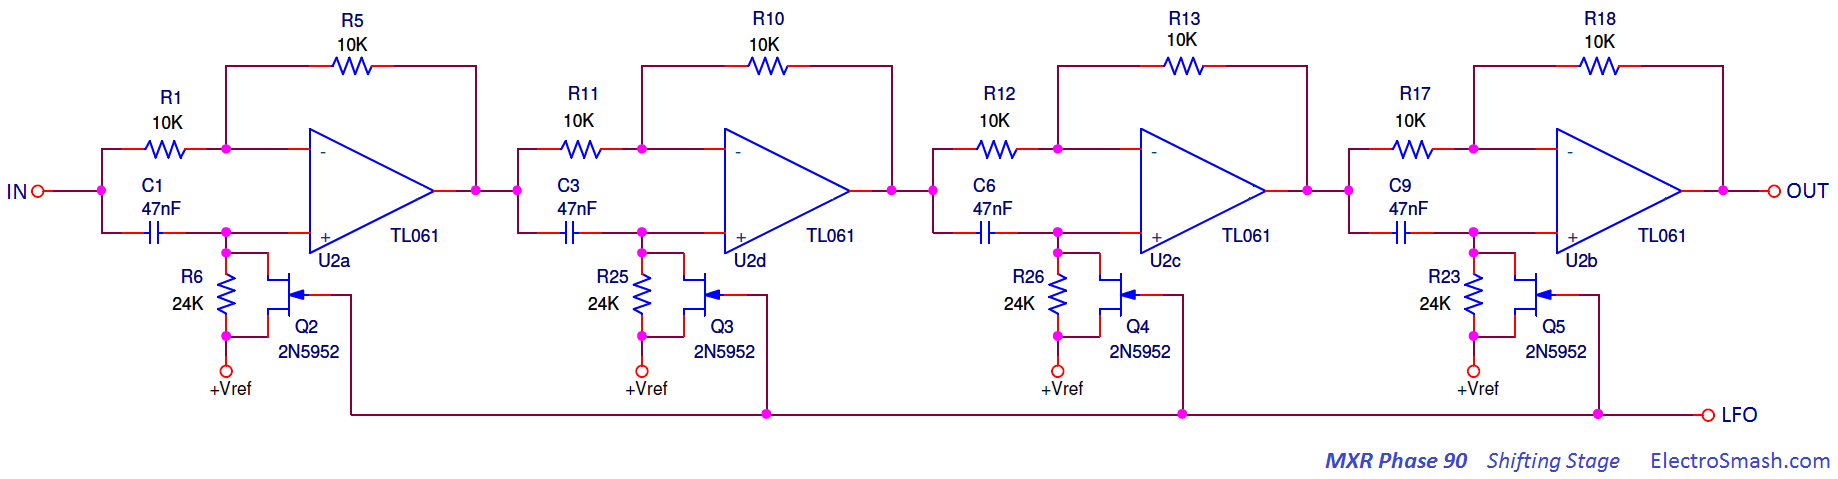 lifying Rtd Signal To Fit Adc Range as well Rc Integrator also Arduino From Scratch Part 7 Arduino Usb Connection moreover Audio Power  lifier Subwoofer Ne5532 Tda2030 furthermore Lm358 Single Supply Problem. on op amp filter circuit